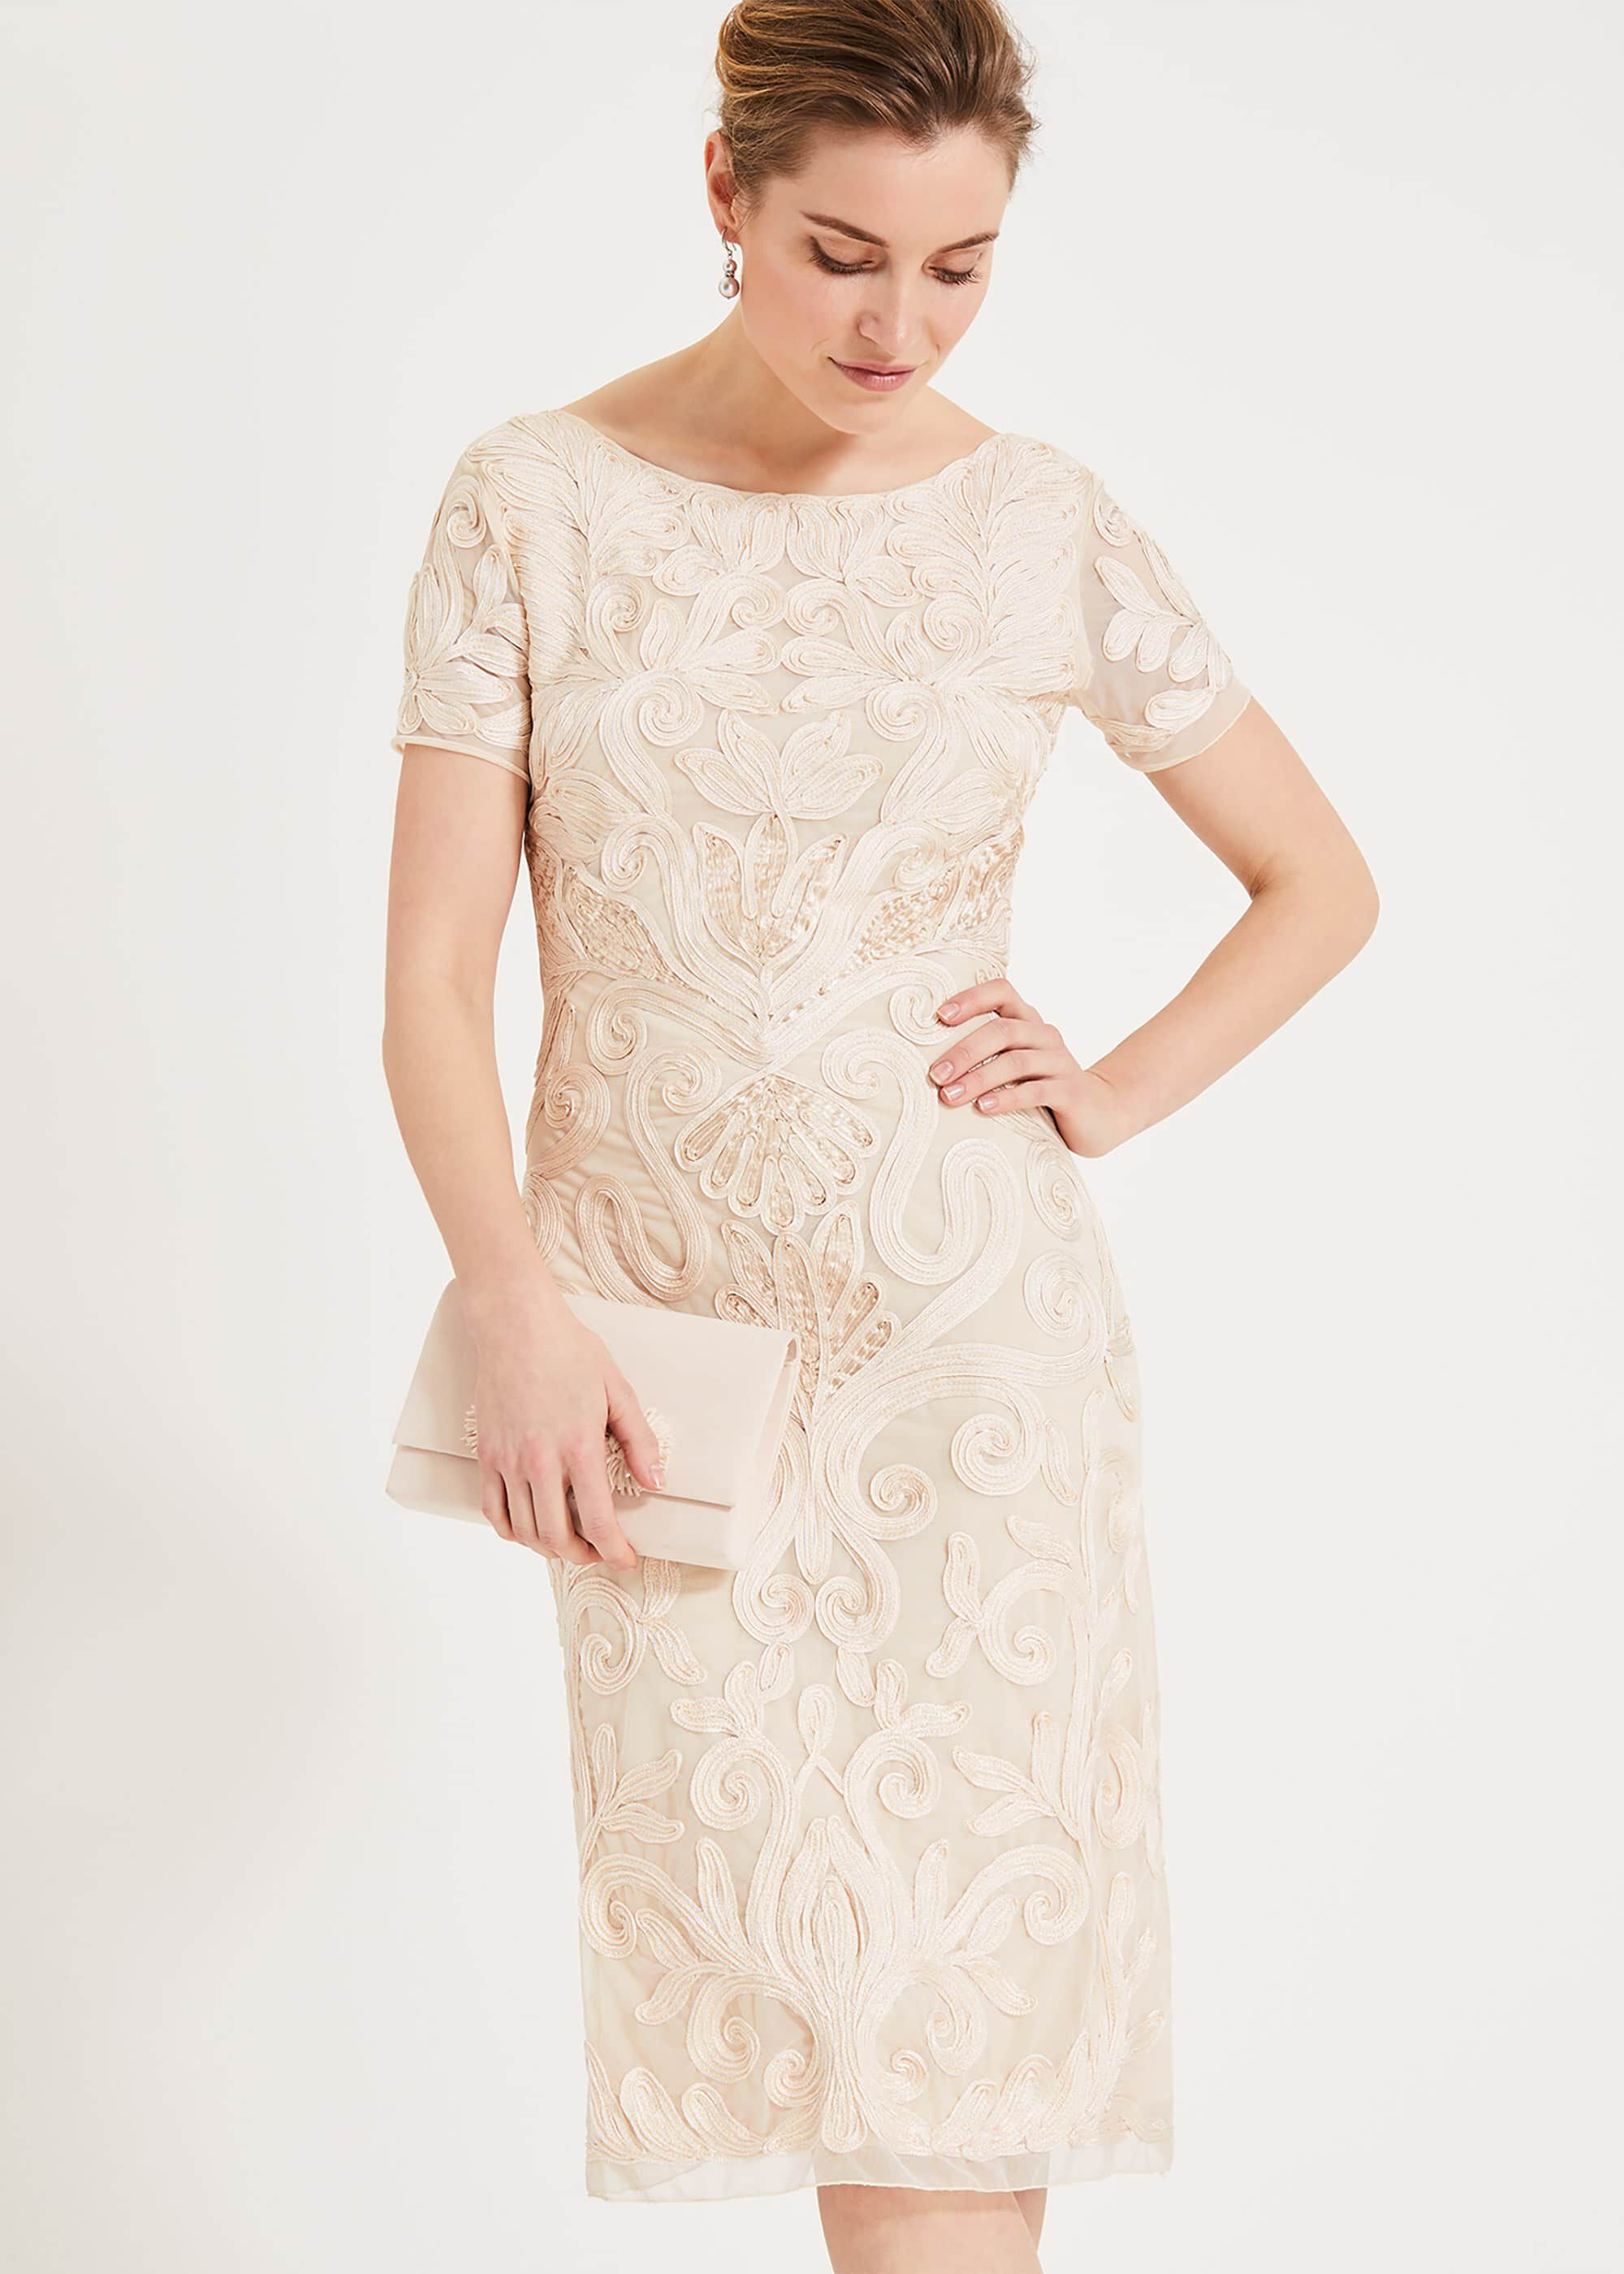 Phase Eight Rosalie Tapework Lace Dress, Cream, Shift